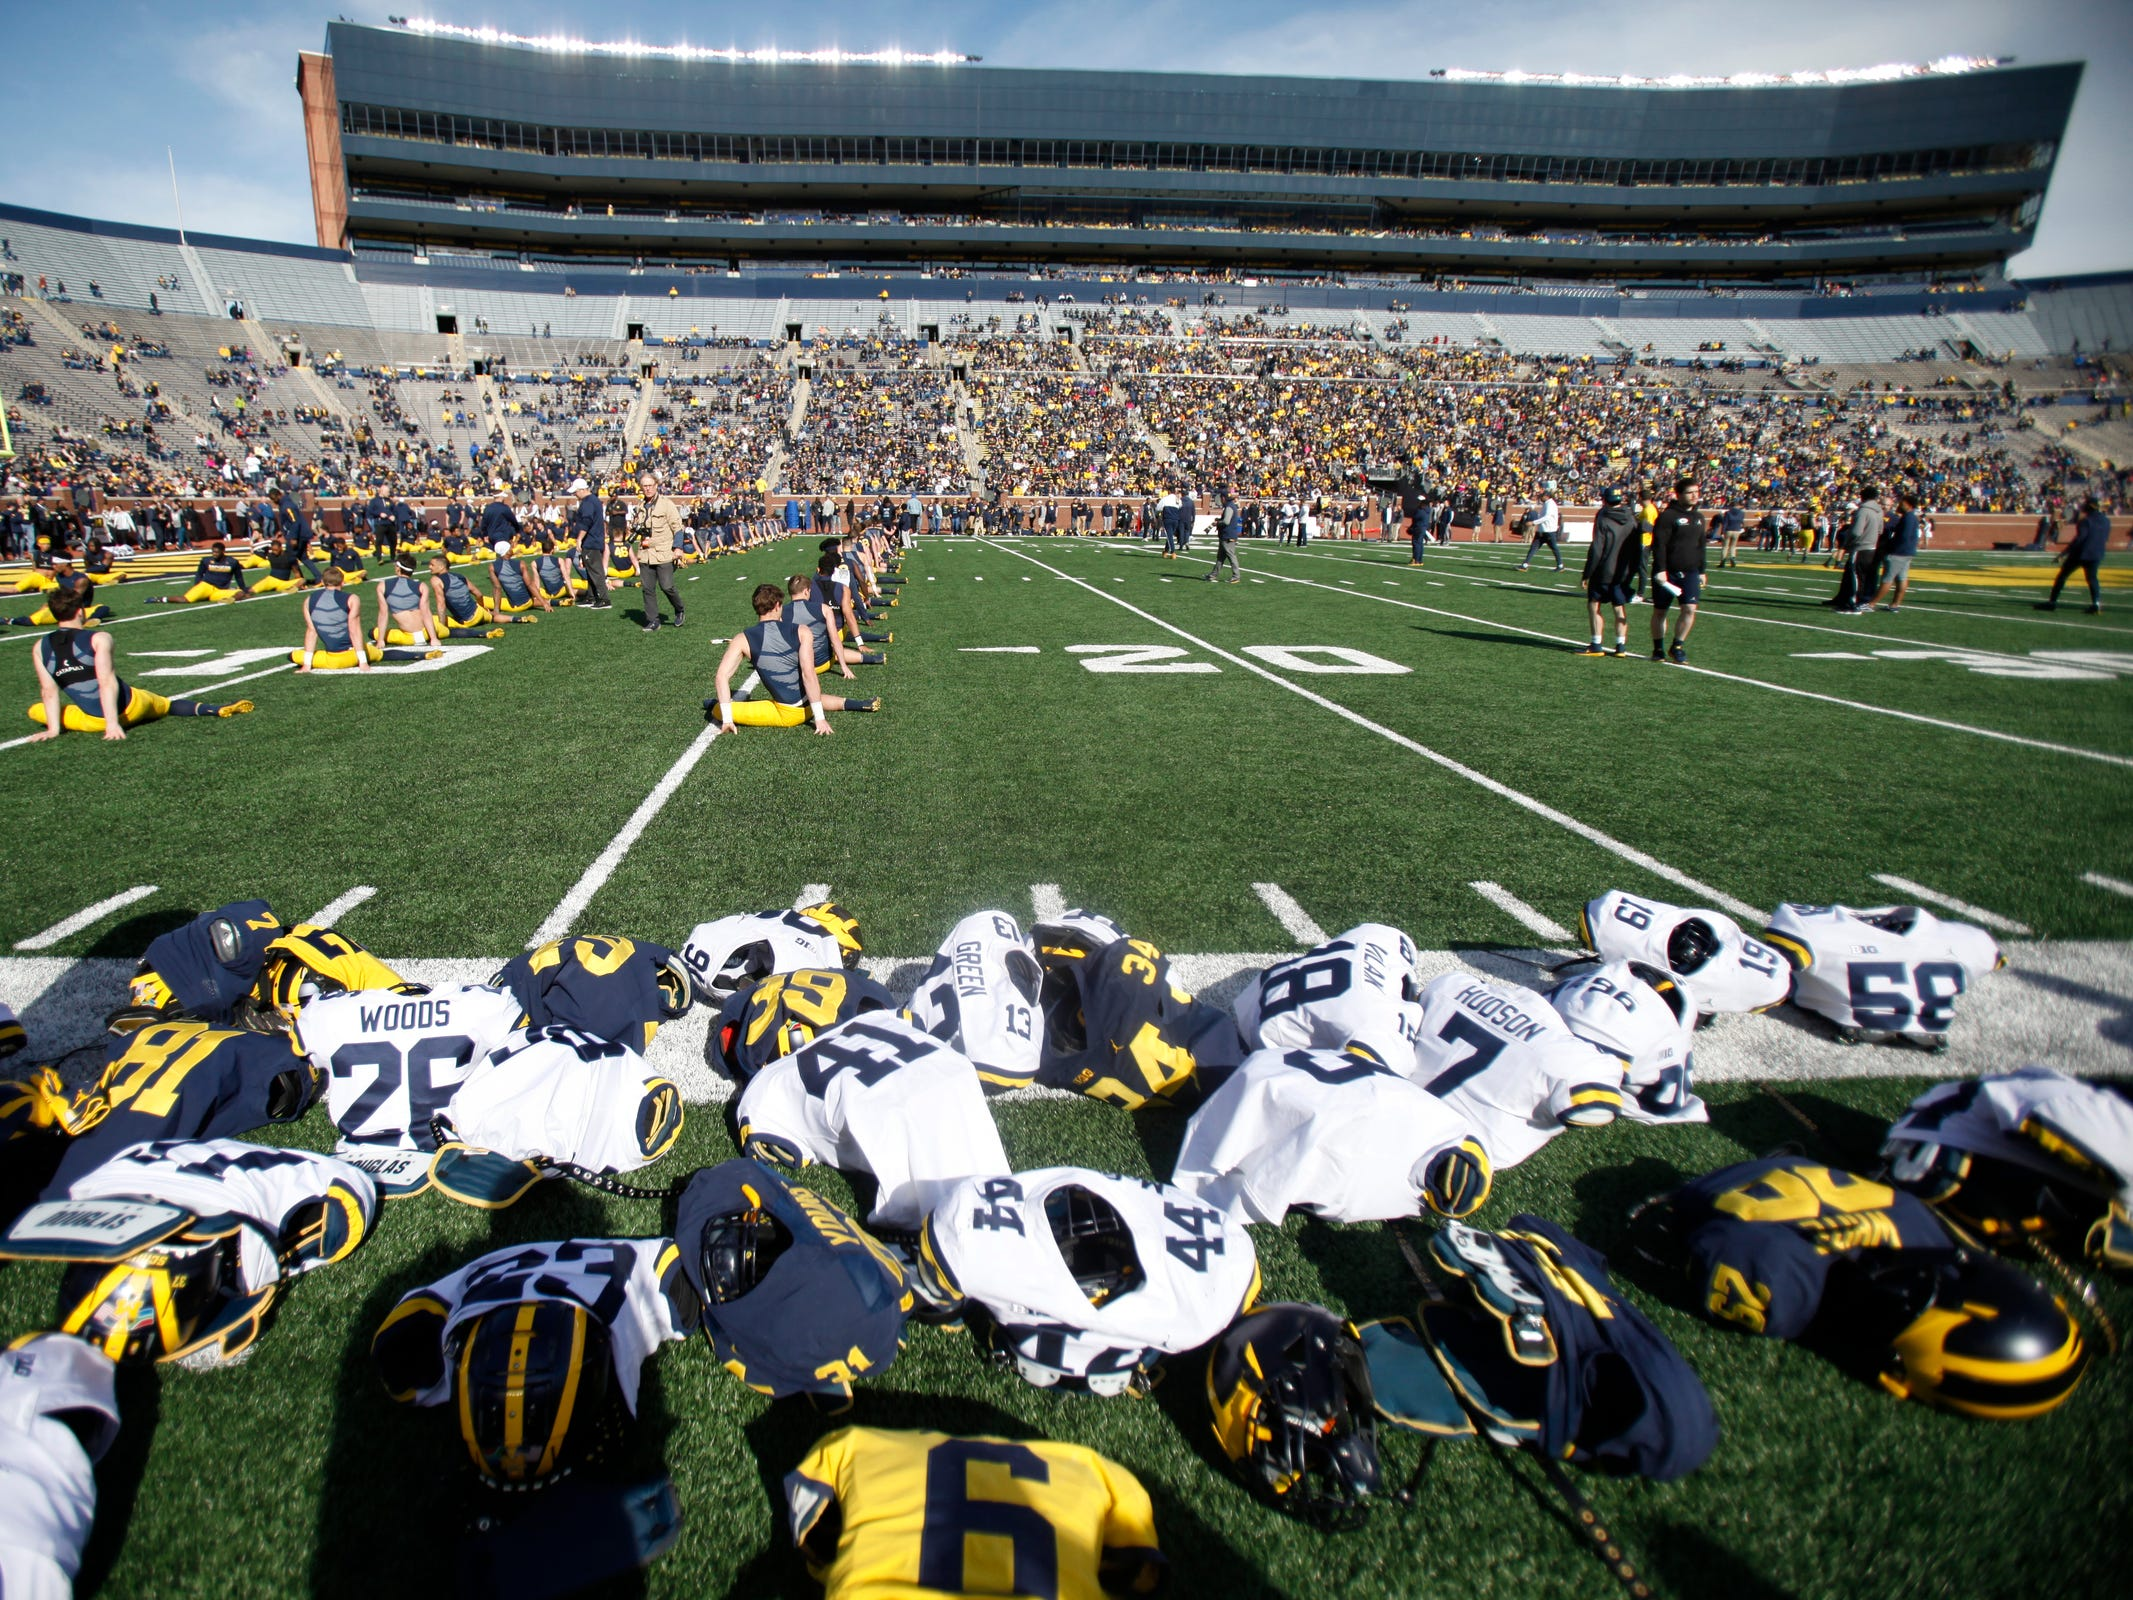 Michigan players warm up before the spring game Saturday, April 13, 2019 at Michigan Stadium in Ann Arbor.